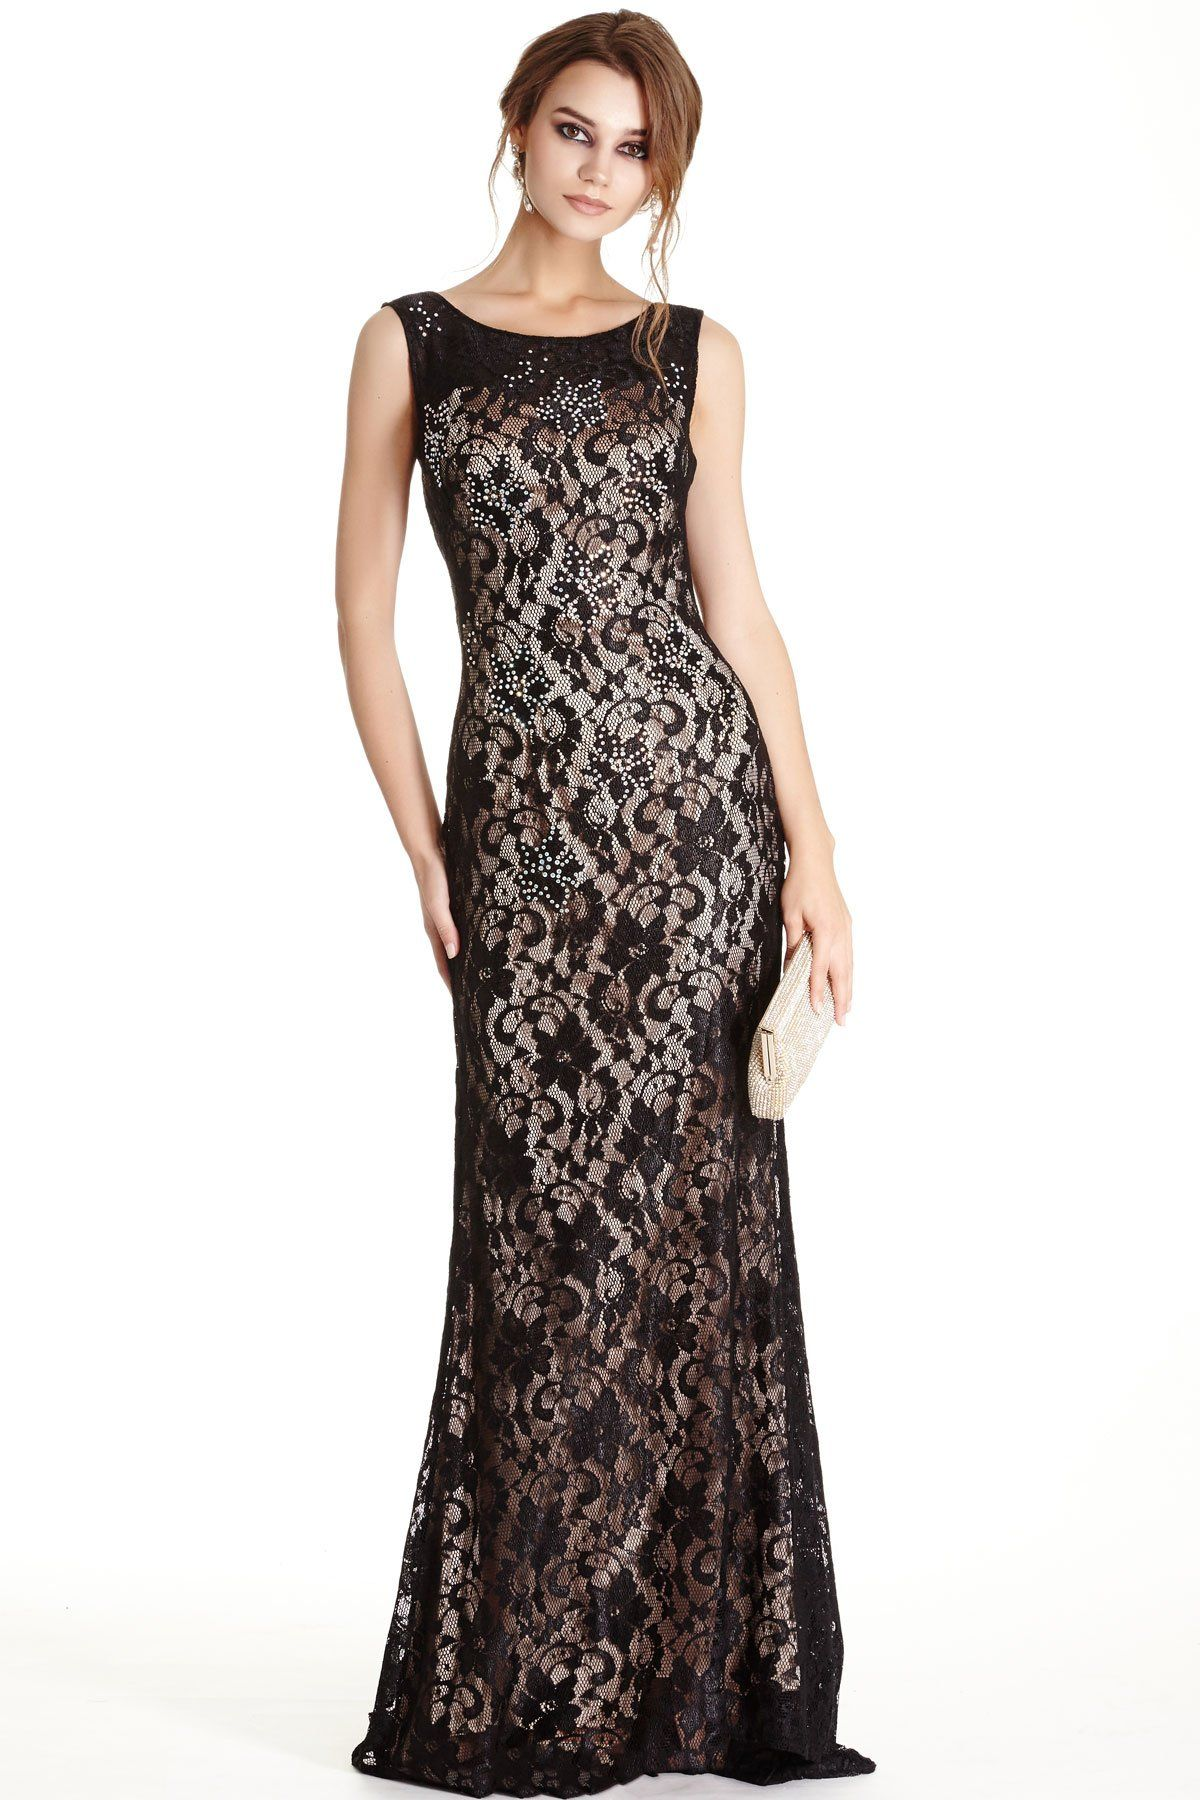 Evening gown apl bodice prom and neckline